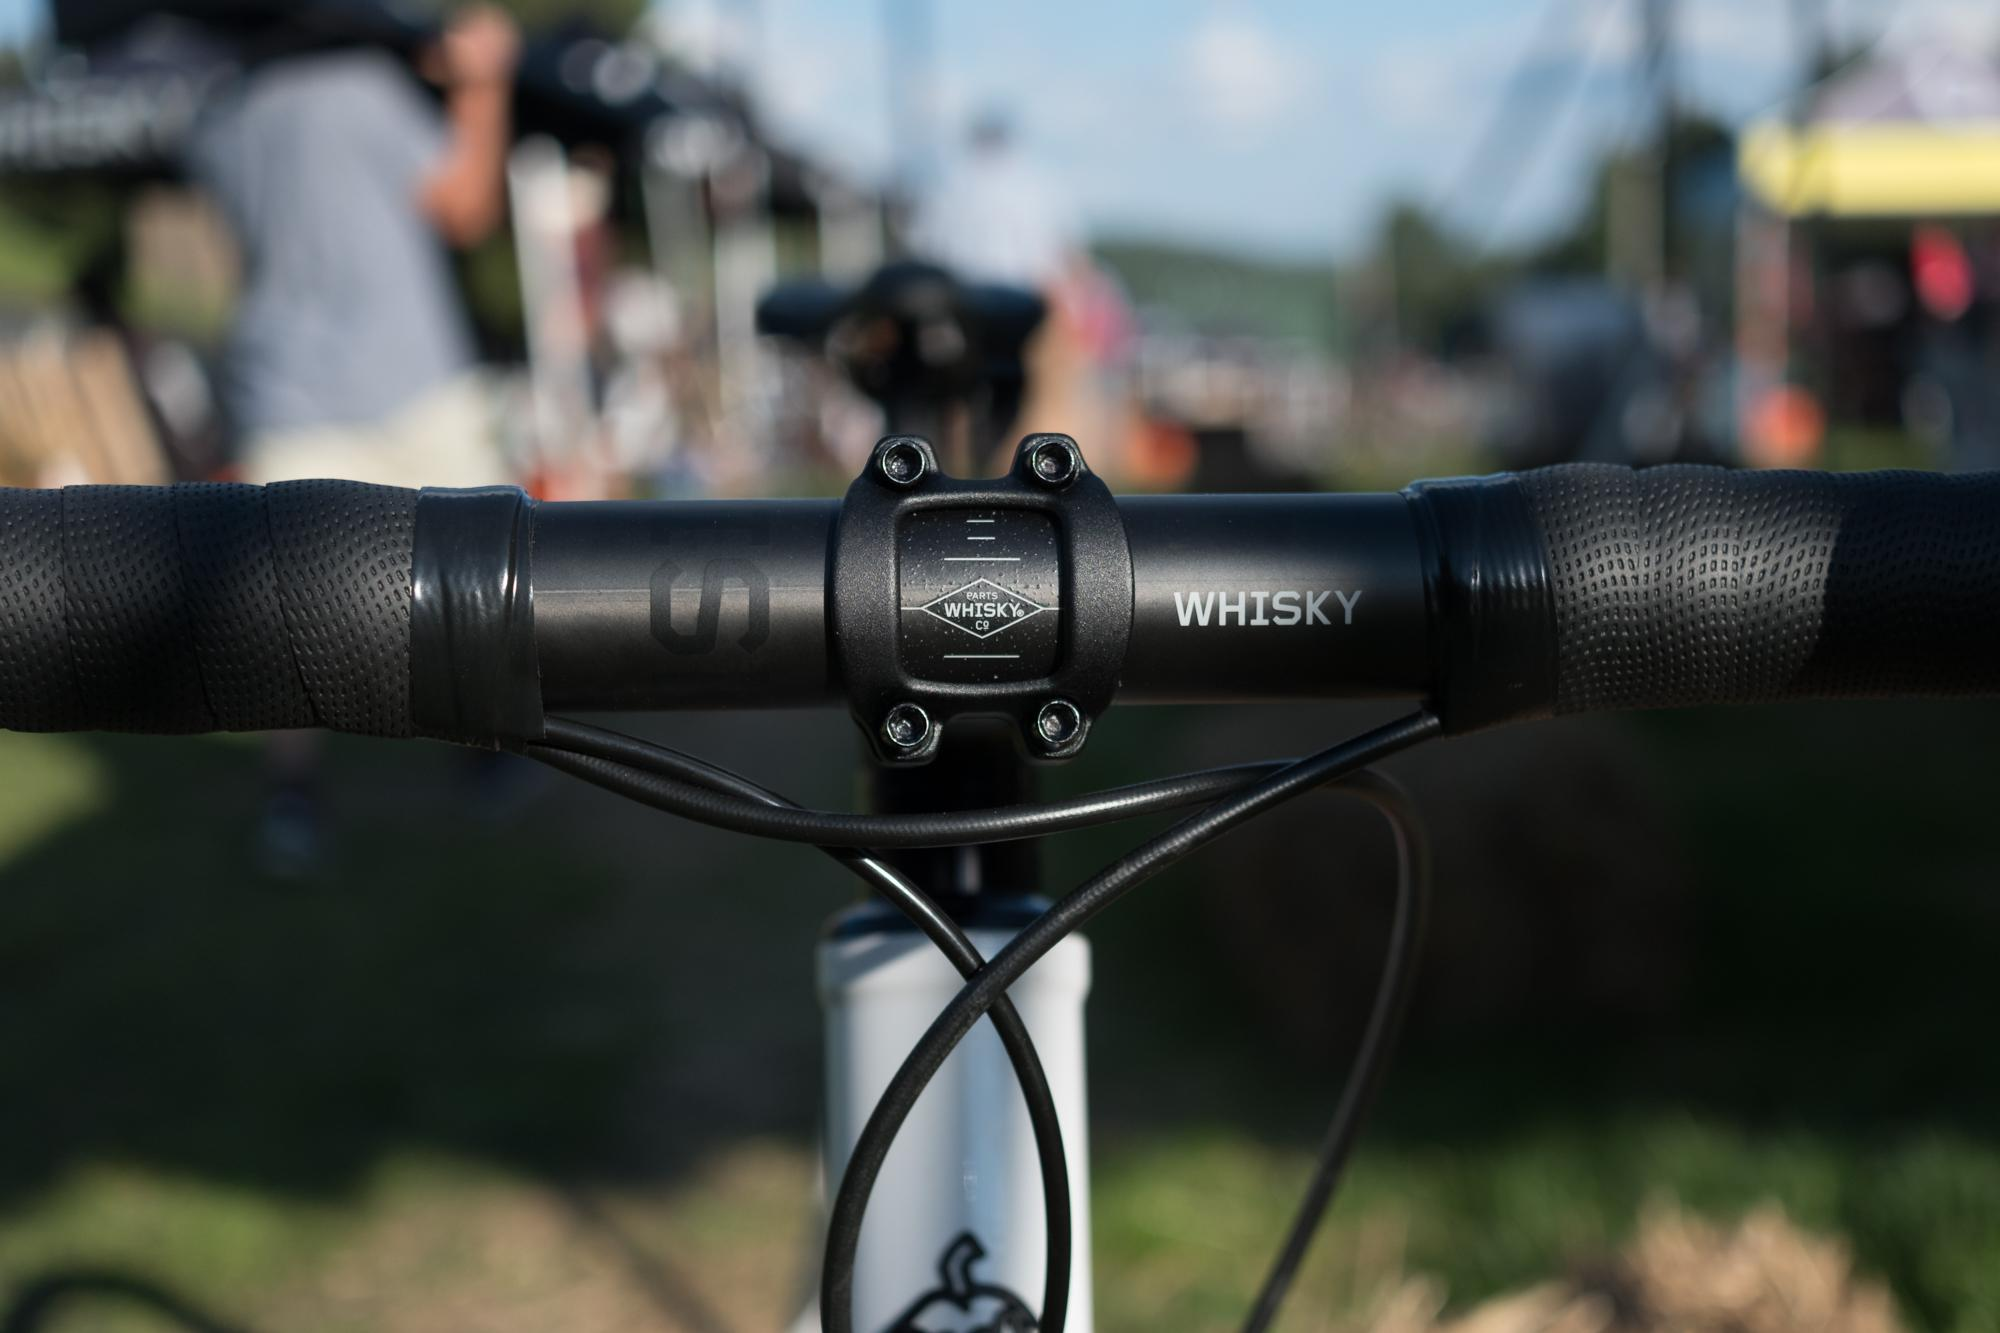 WHISKY CARBON